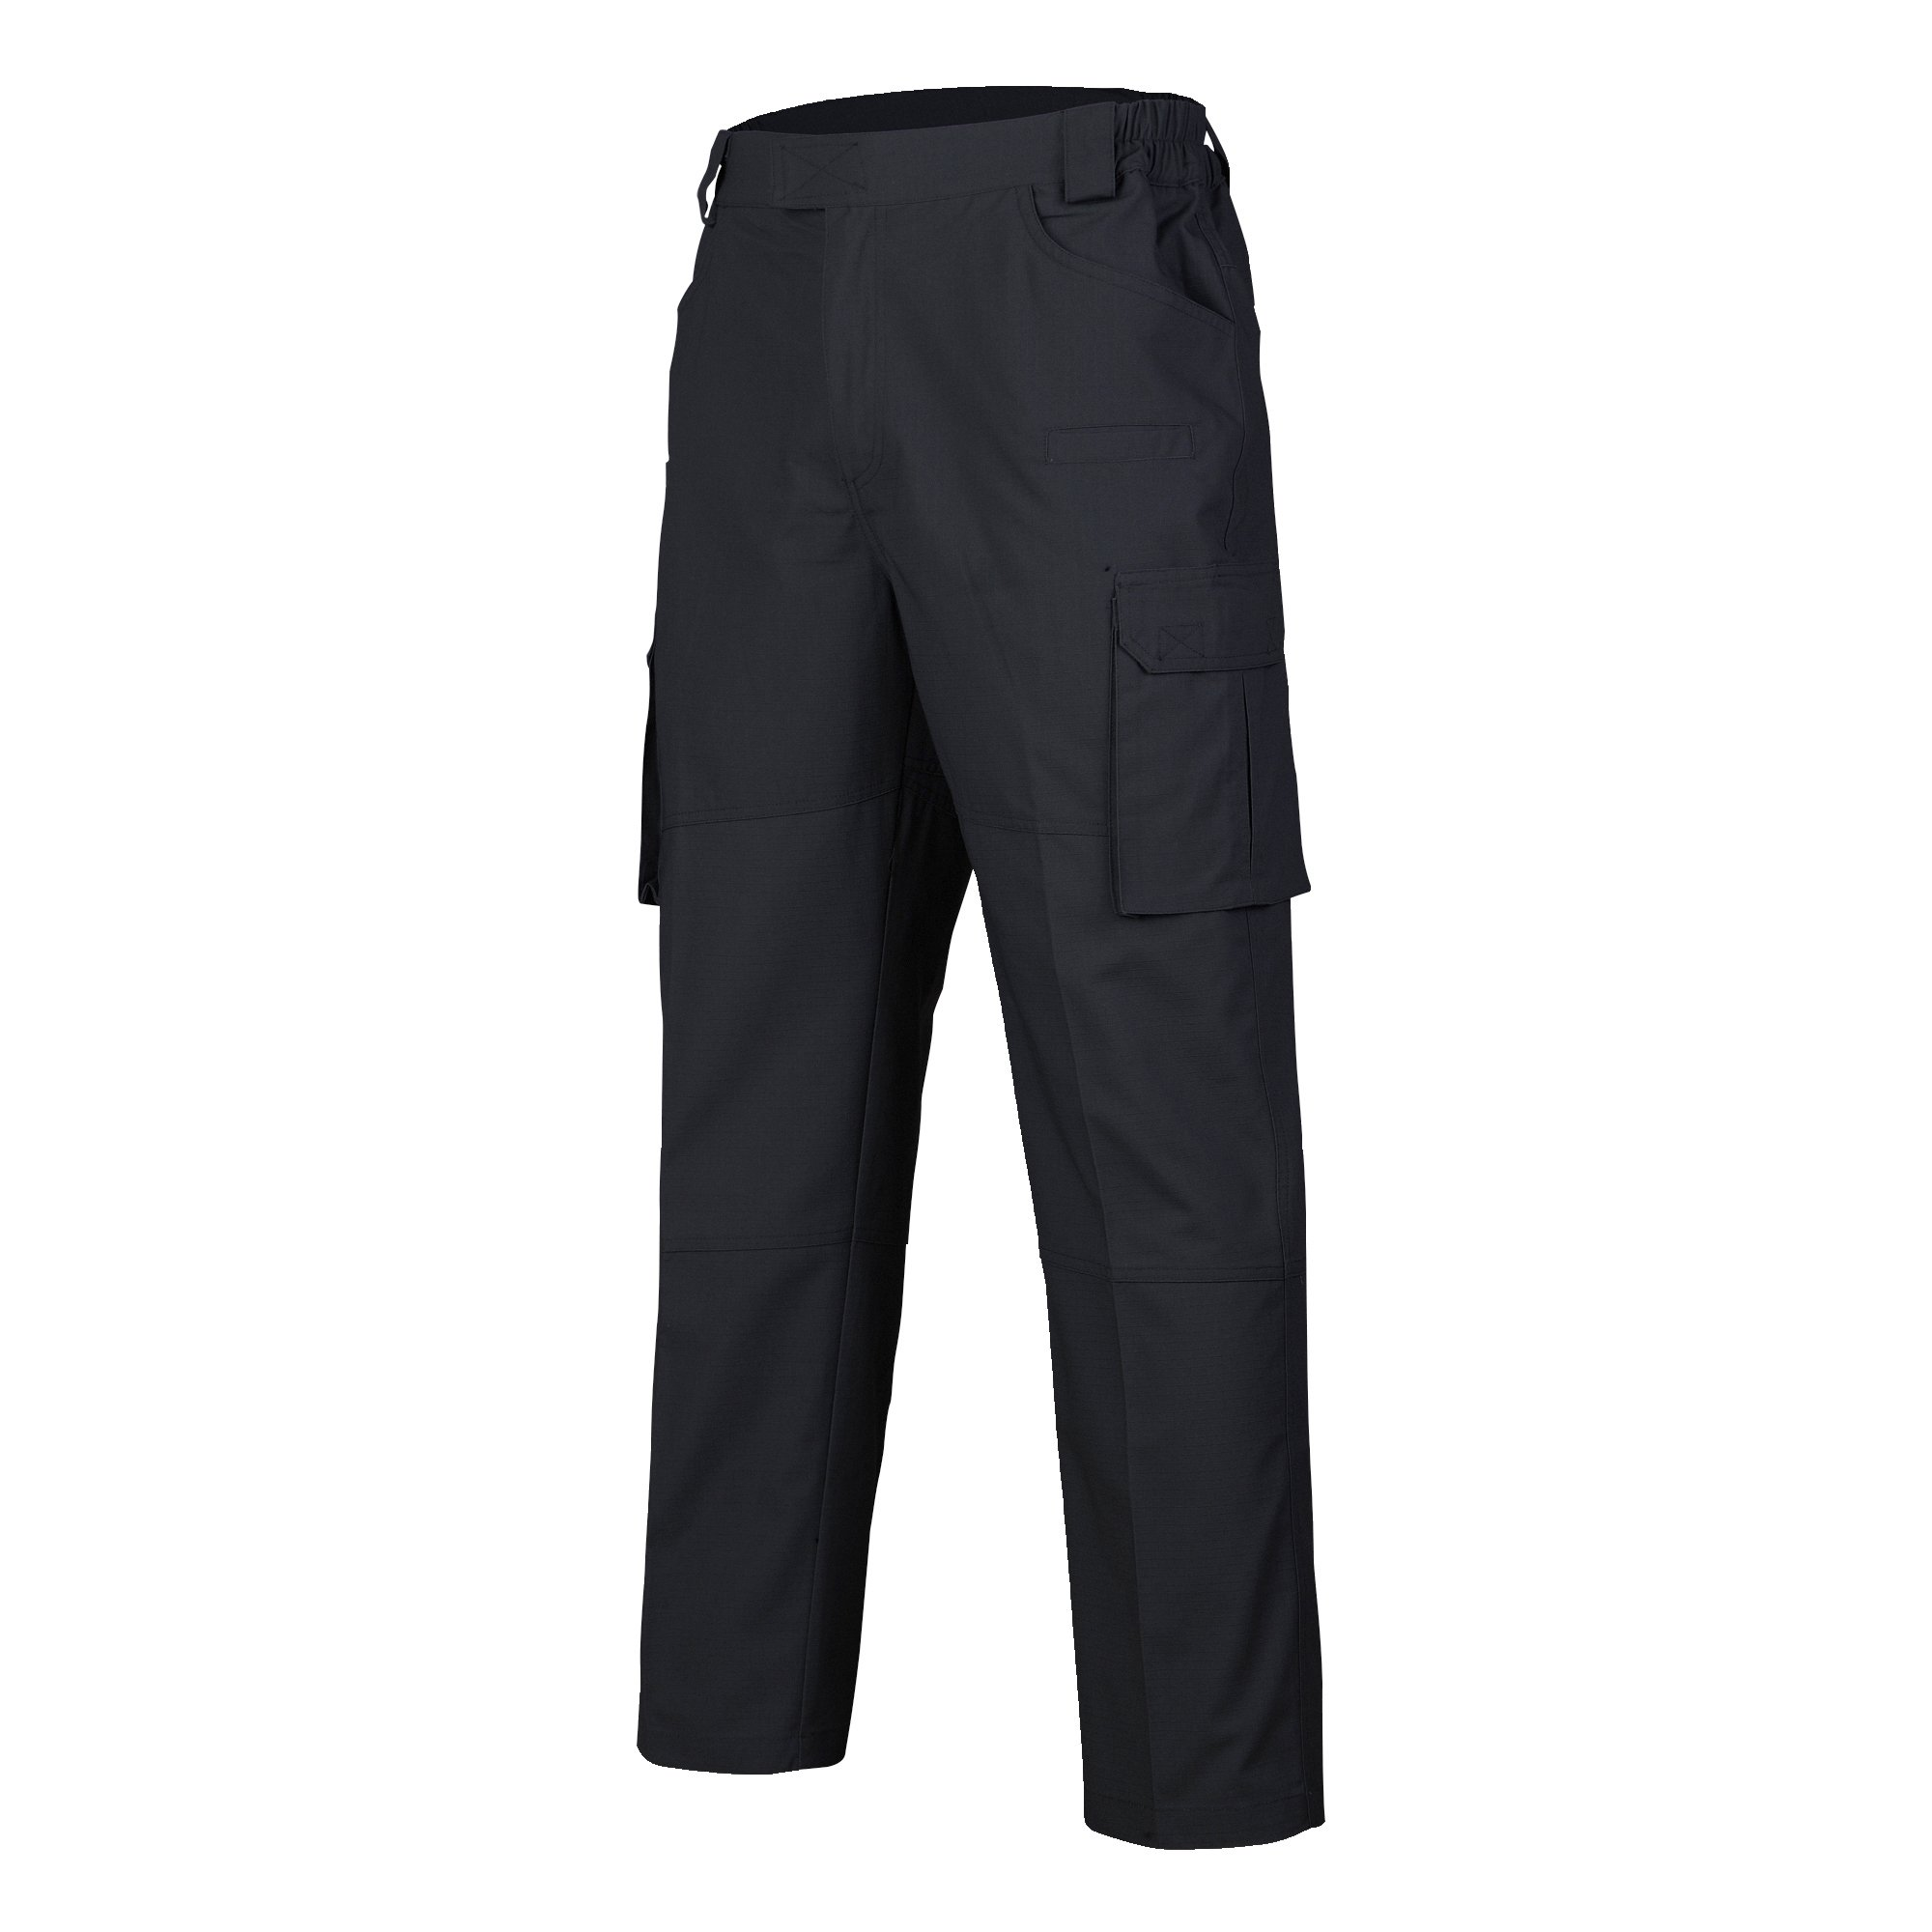 Mens Tactical Pants with 8 Pockets Training Cargo Pants Rip Stop Work Pants(Black,L)